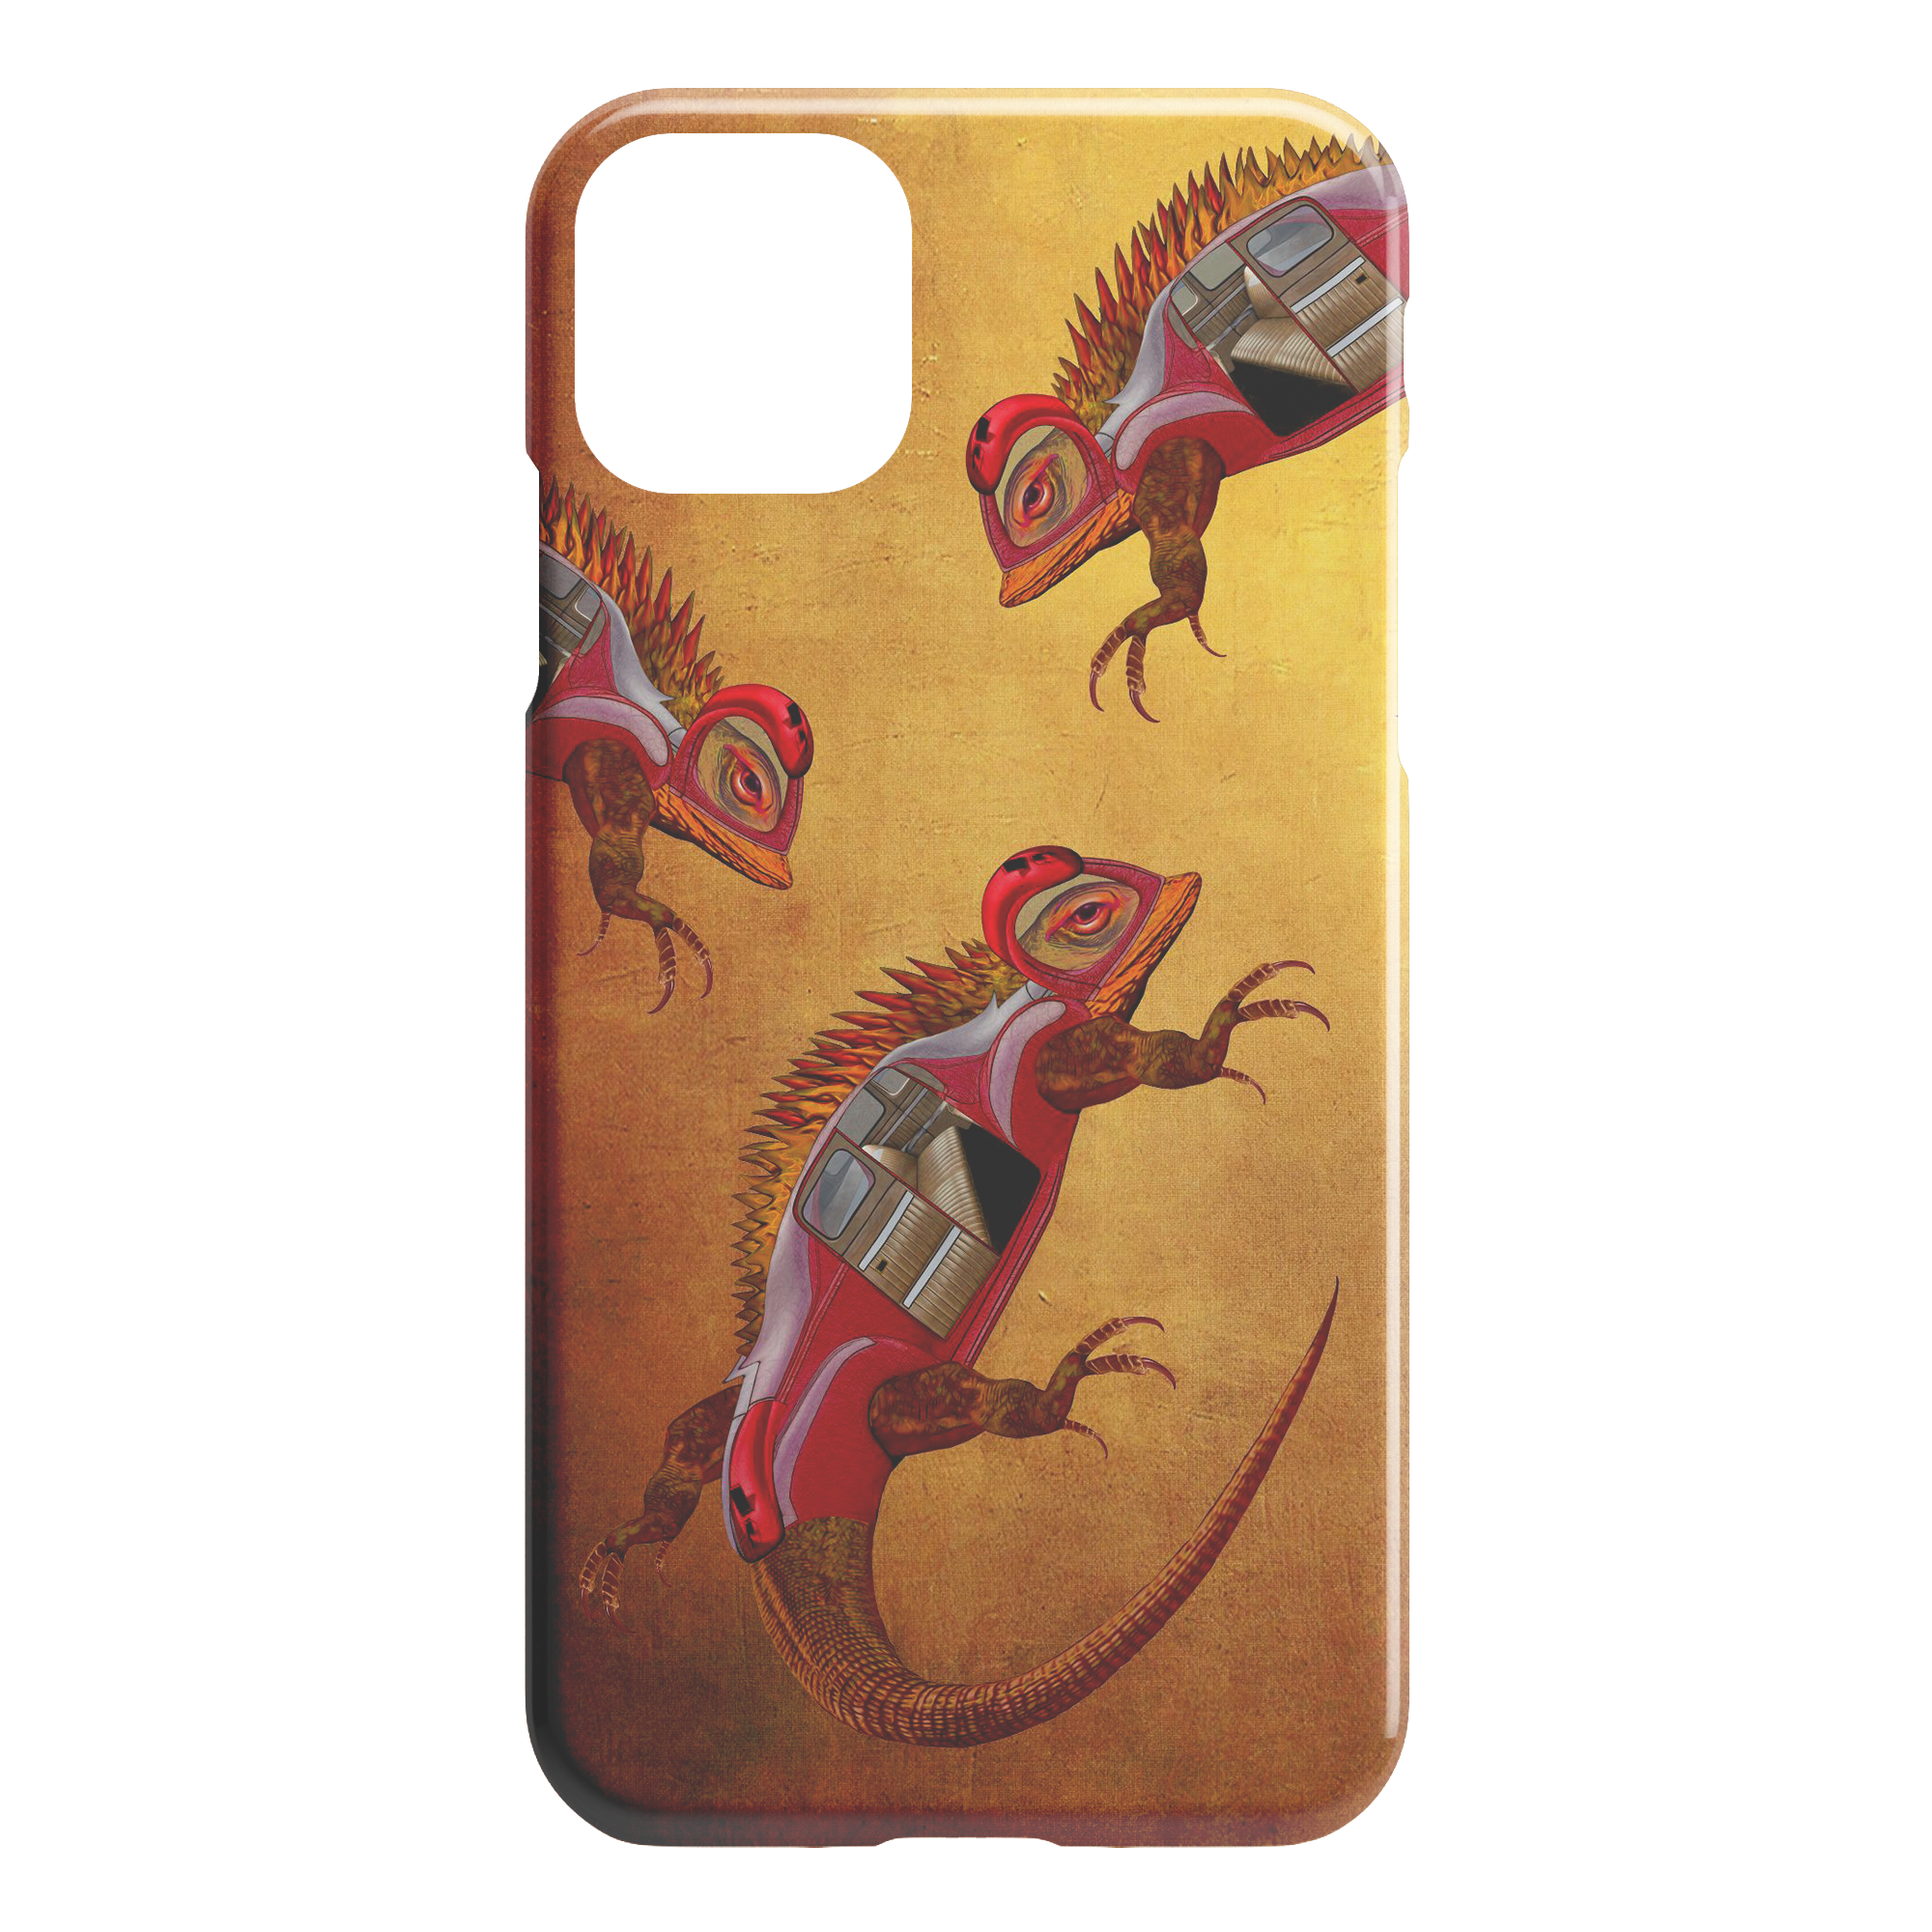 UBER LIZARDS INVADE - iPHONE CASE